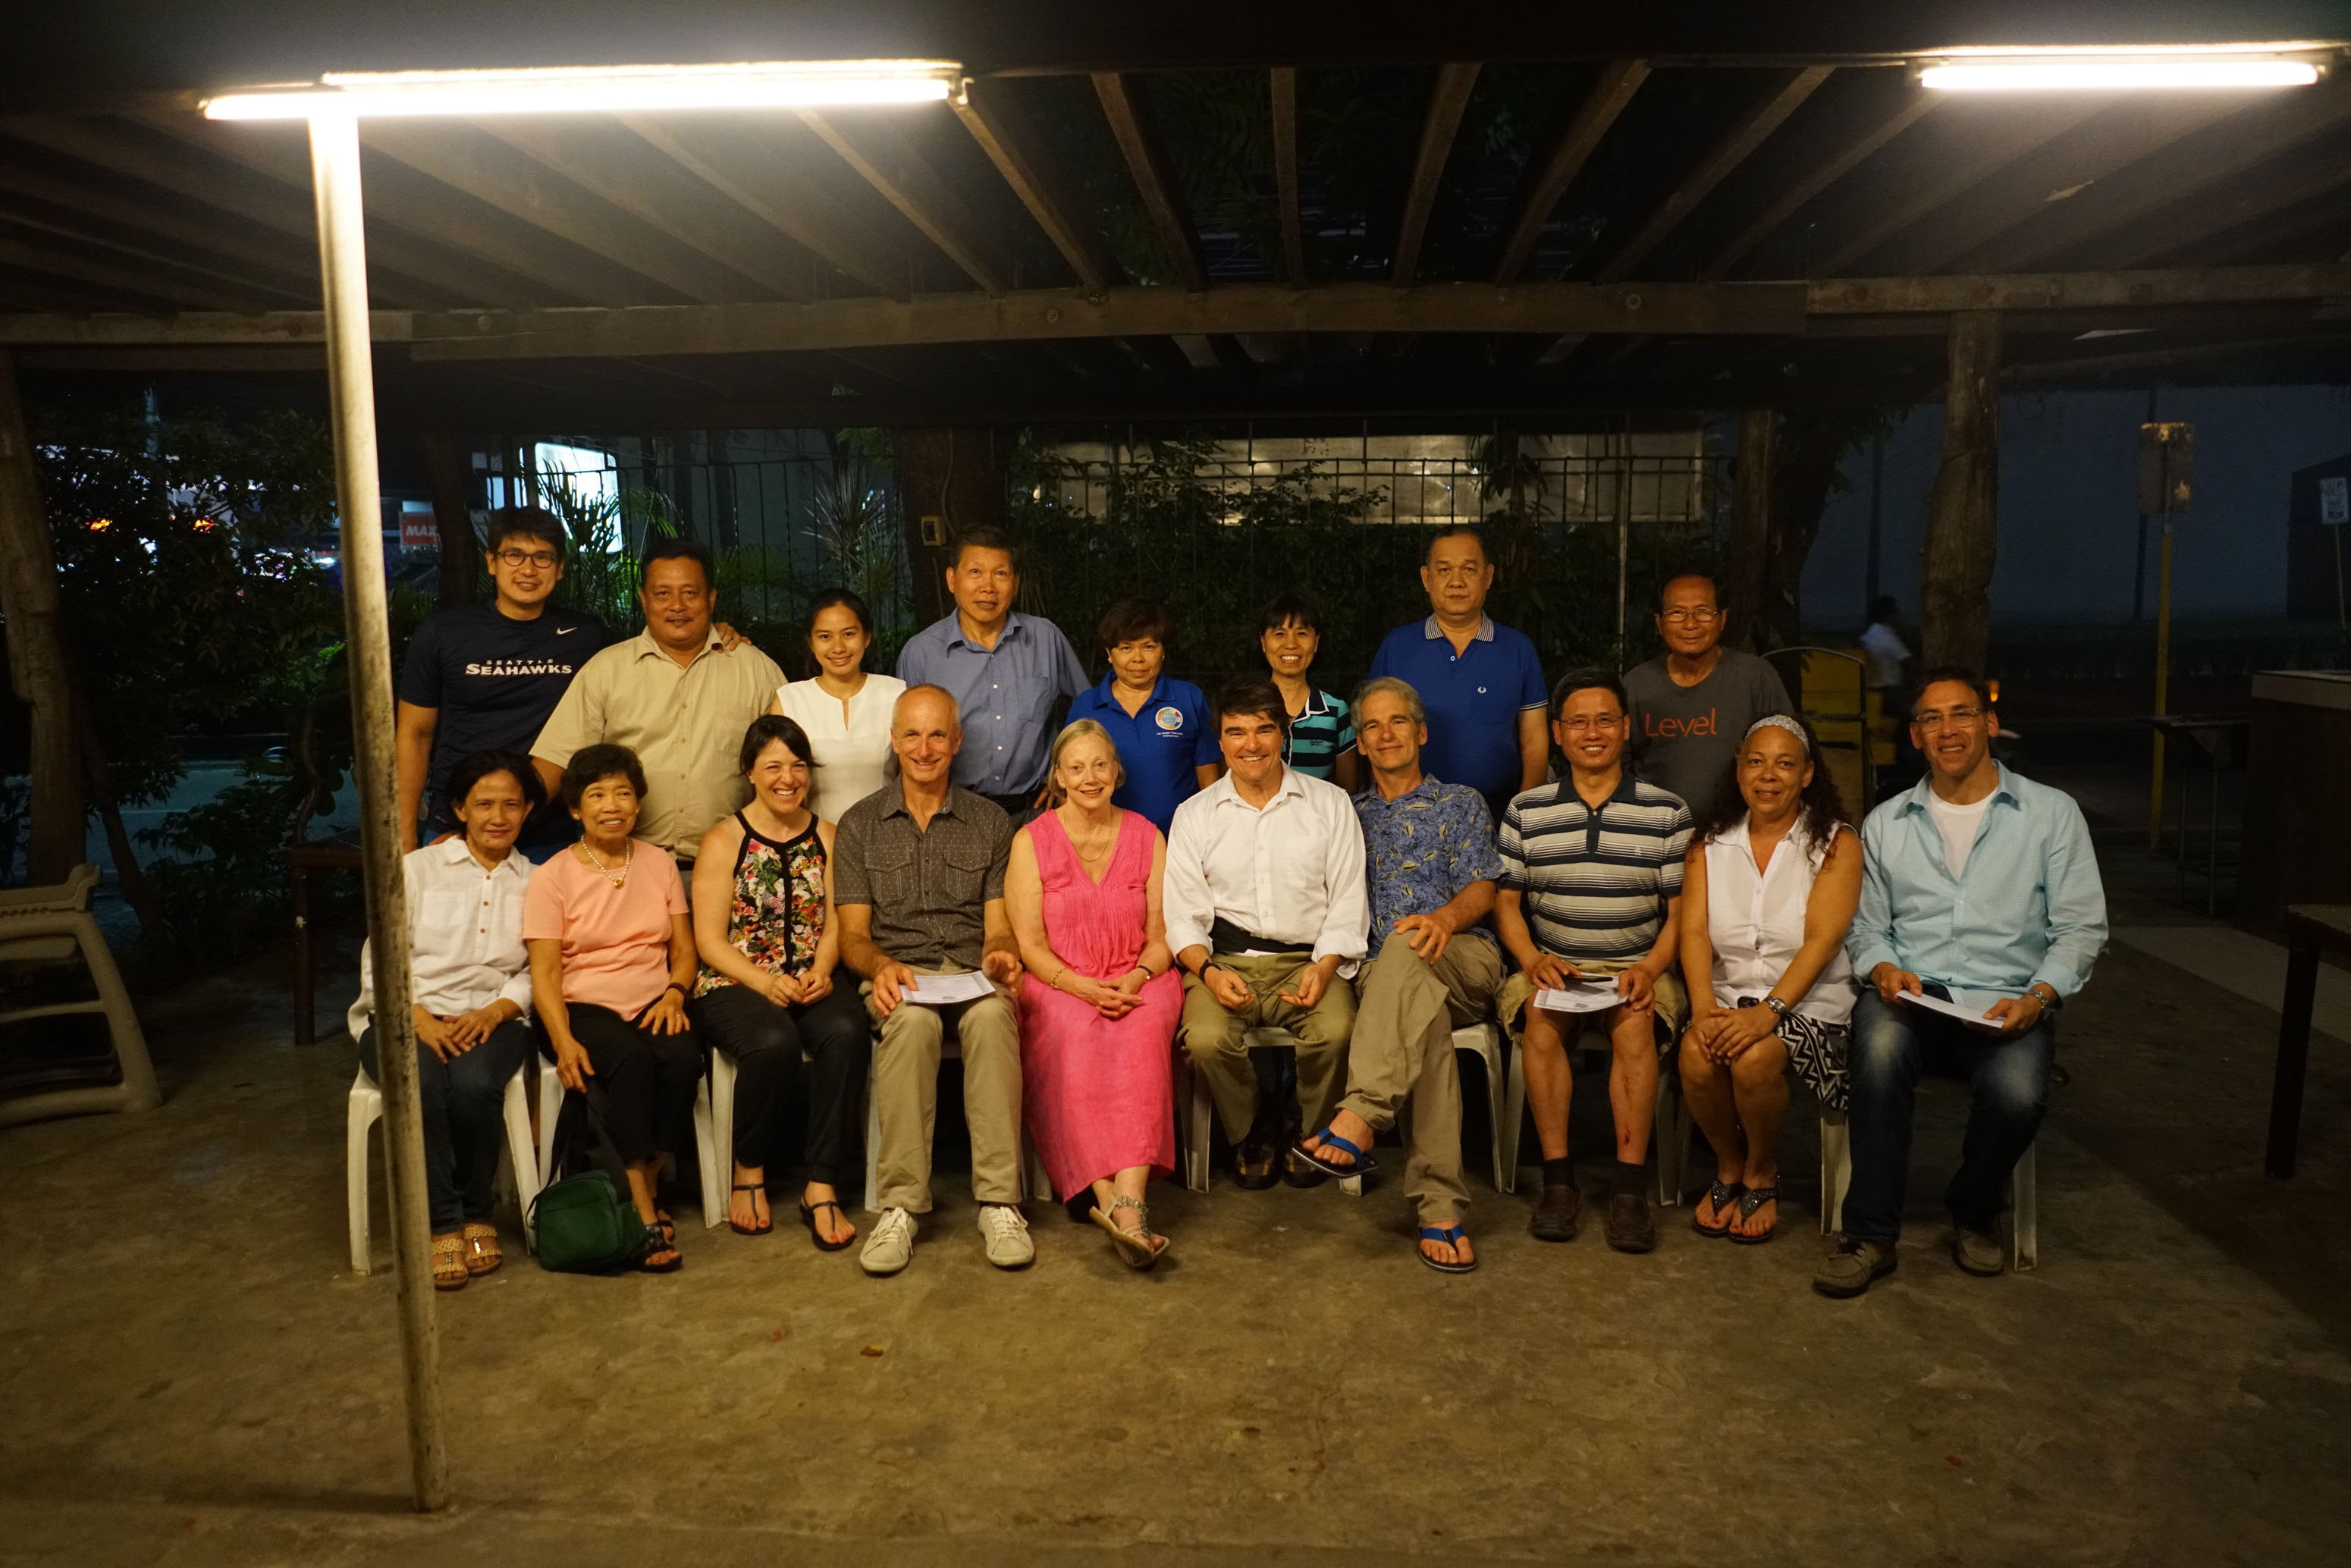 philippine_2016_Day-8-Goodbye-dinner-entire-remaining-NSVI-group